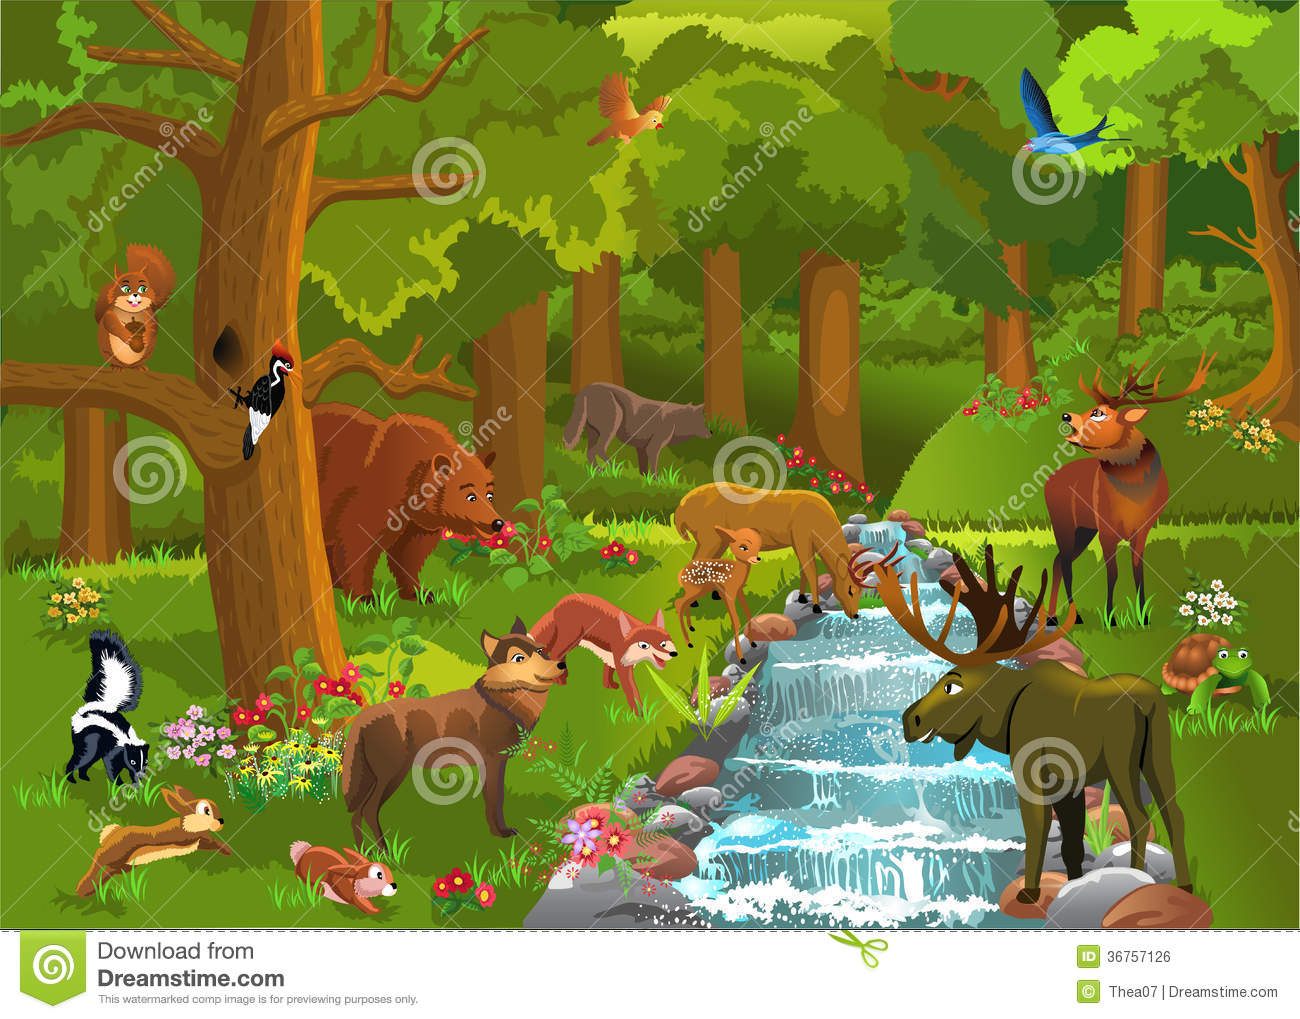 Jungle animals and water clipart.